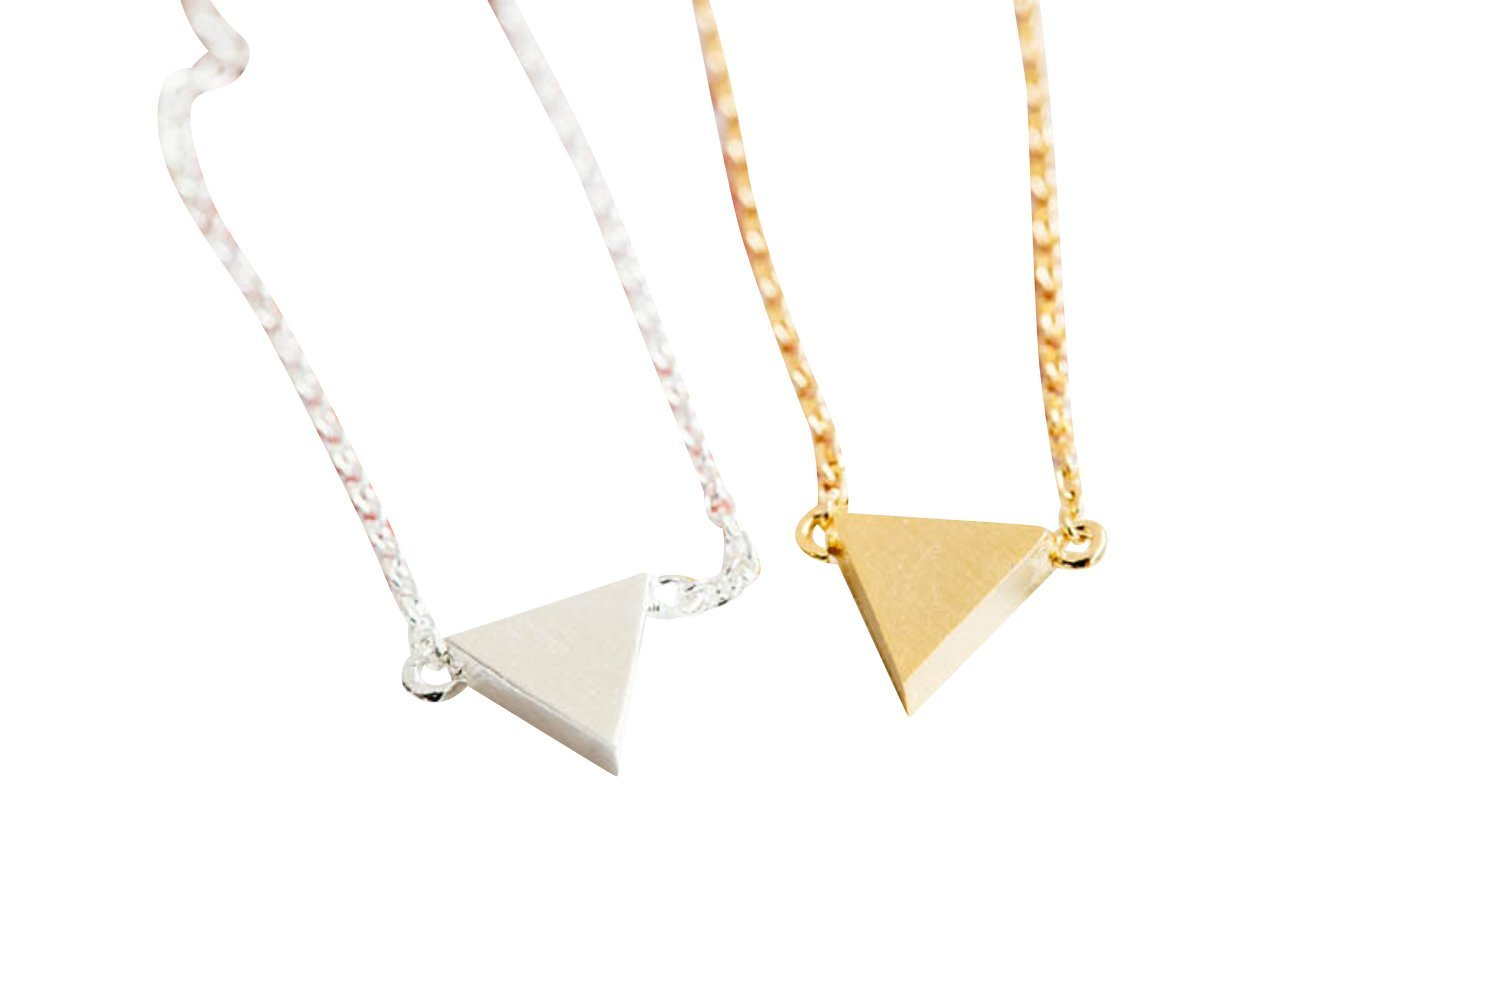 Upside Down Triangle Necklace-mn , triangle jewelry, triangle necklace, triangle shape jewelry, triangle shape necklace, triangle jewellry, geometric